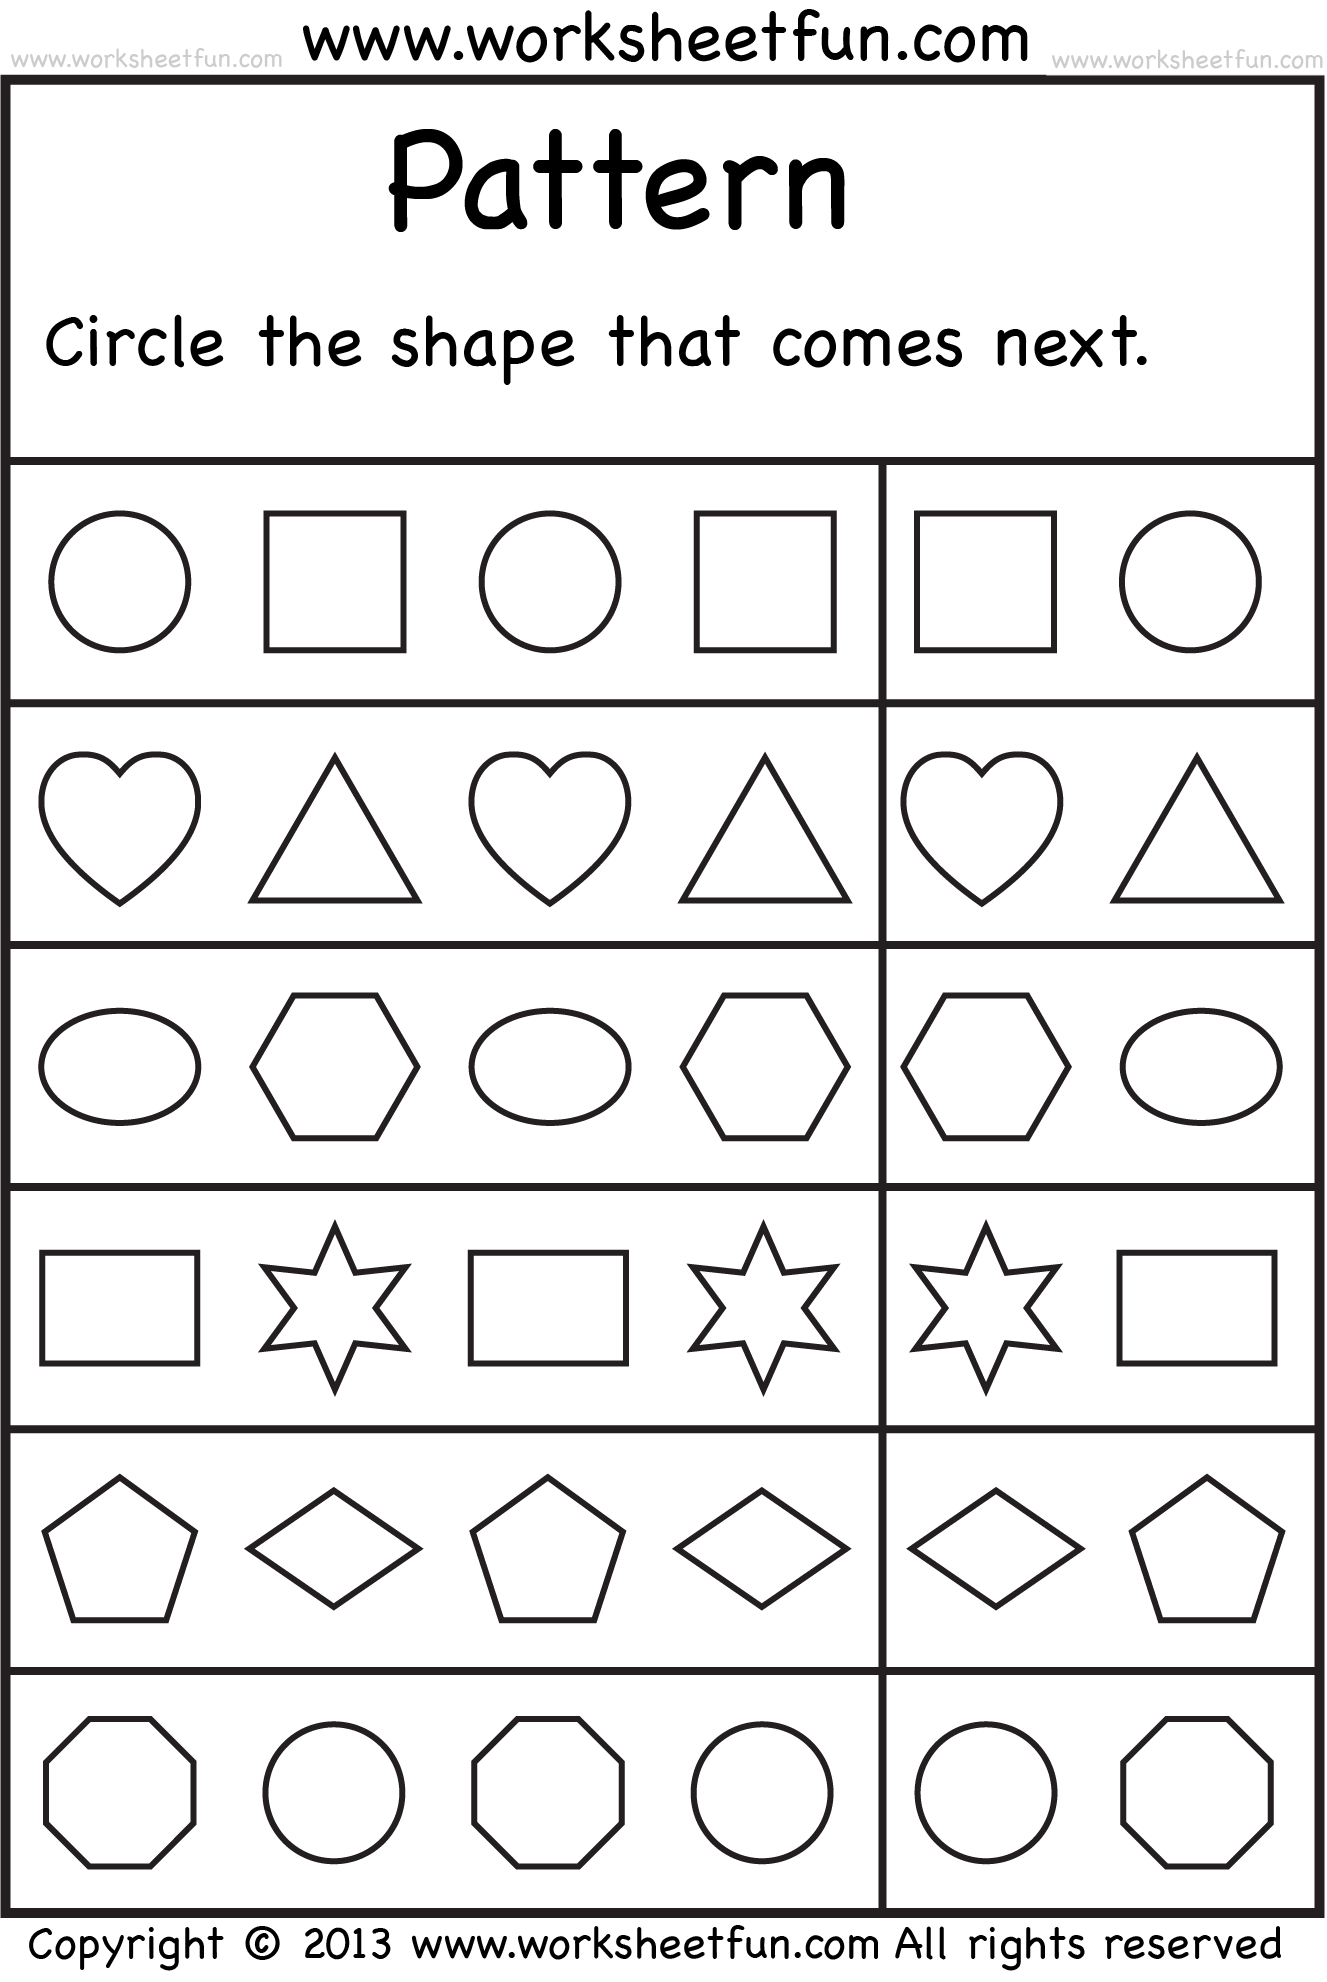 Weirdmailus  Unique  Images About School Worksheets On Pinterest  Number Words  With Gorgeous  Images About School Worksheets On Pinterest  Number Words Alphabet Worksheets And Free Printable Kindergarten Worksheets With Amazing Reading Grade  Worksheets Also Free Letter C Worksheets In Addition Addition Pyramid Worksheet And Matching Worksheets For Toddlers As Well As Free Canadian Money Worksheets Additionally Printable Editing Worksheets From Pinterestcom With Weirdmailus  Gorgeous  Images About School Worksheets On Pinterest  Number Words  With Amazing  Images About School Worksheets On Pinterest  Number Words Alphabet Worksheets And Free Printable Kindergarten Worksheets And Unique Reading Grade  Worksheets Also Free Letter C Worksheets In Addition Addition Pyramid Worksheet From Pinterestcom